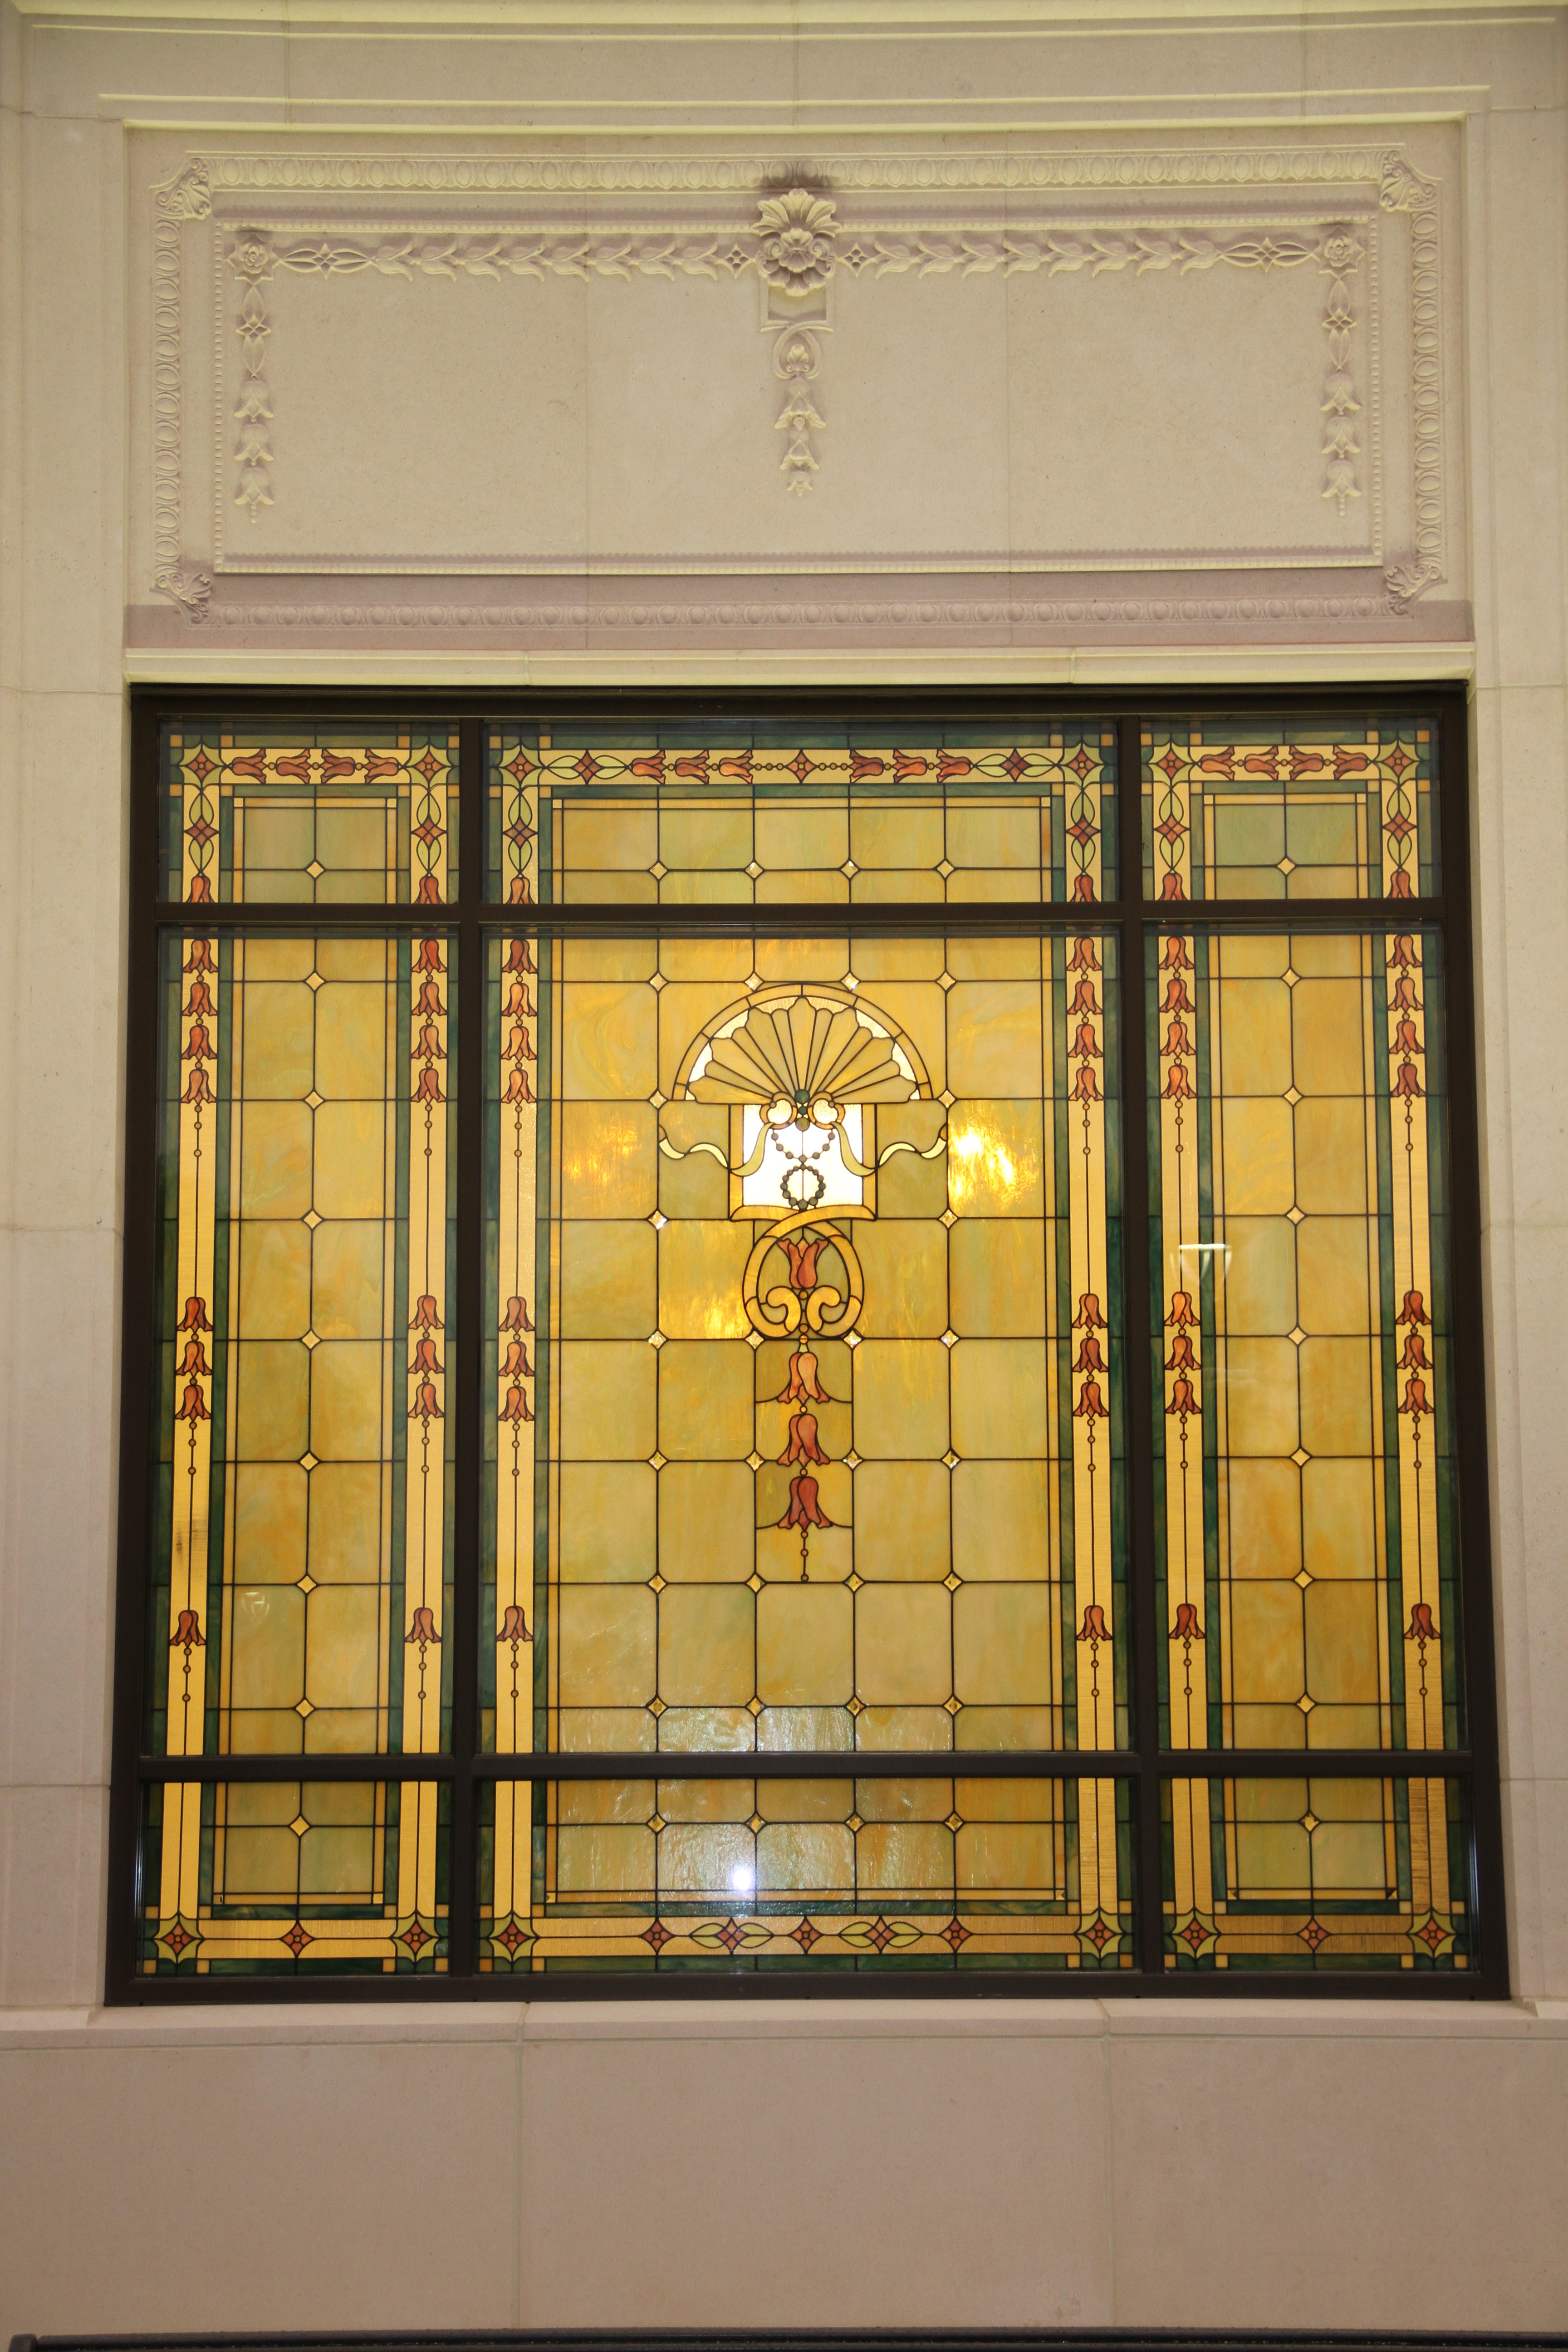 The stained glass window on the south side of the Memphis Tennessee Temple on May 4, 2019.